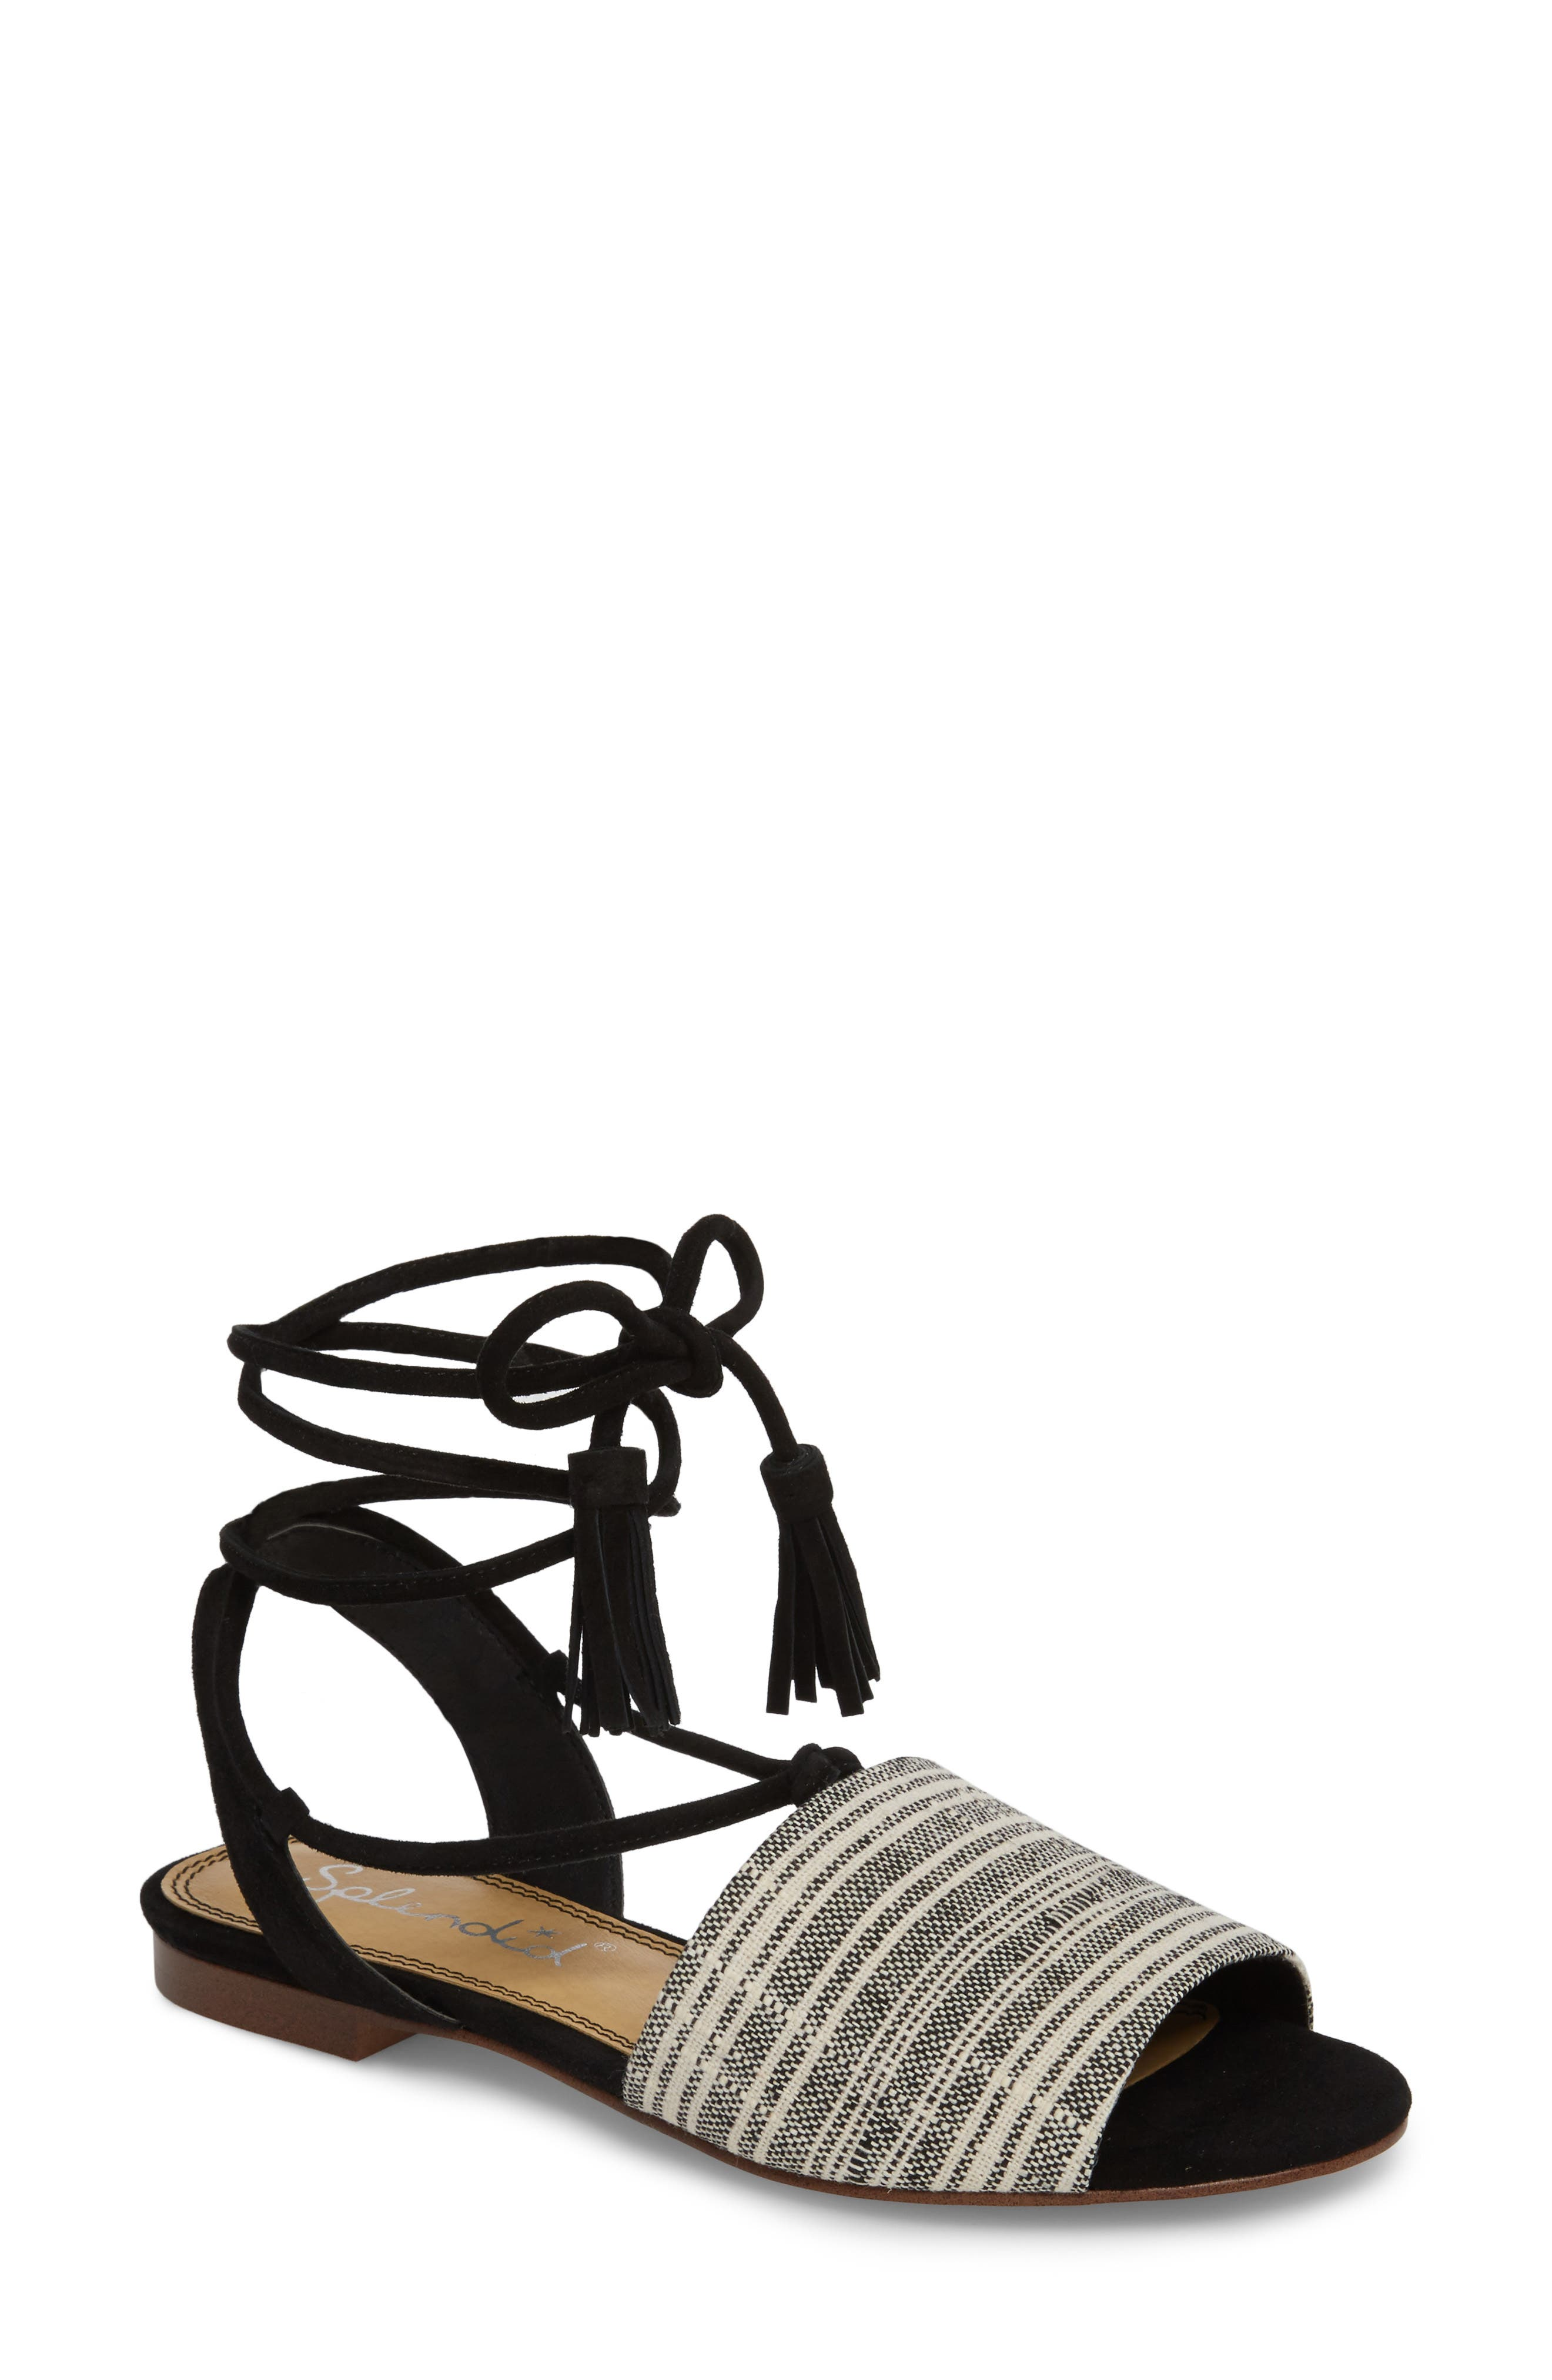 Fidel Ankle Tie Sandal by Splendid